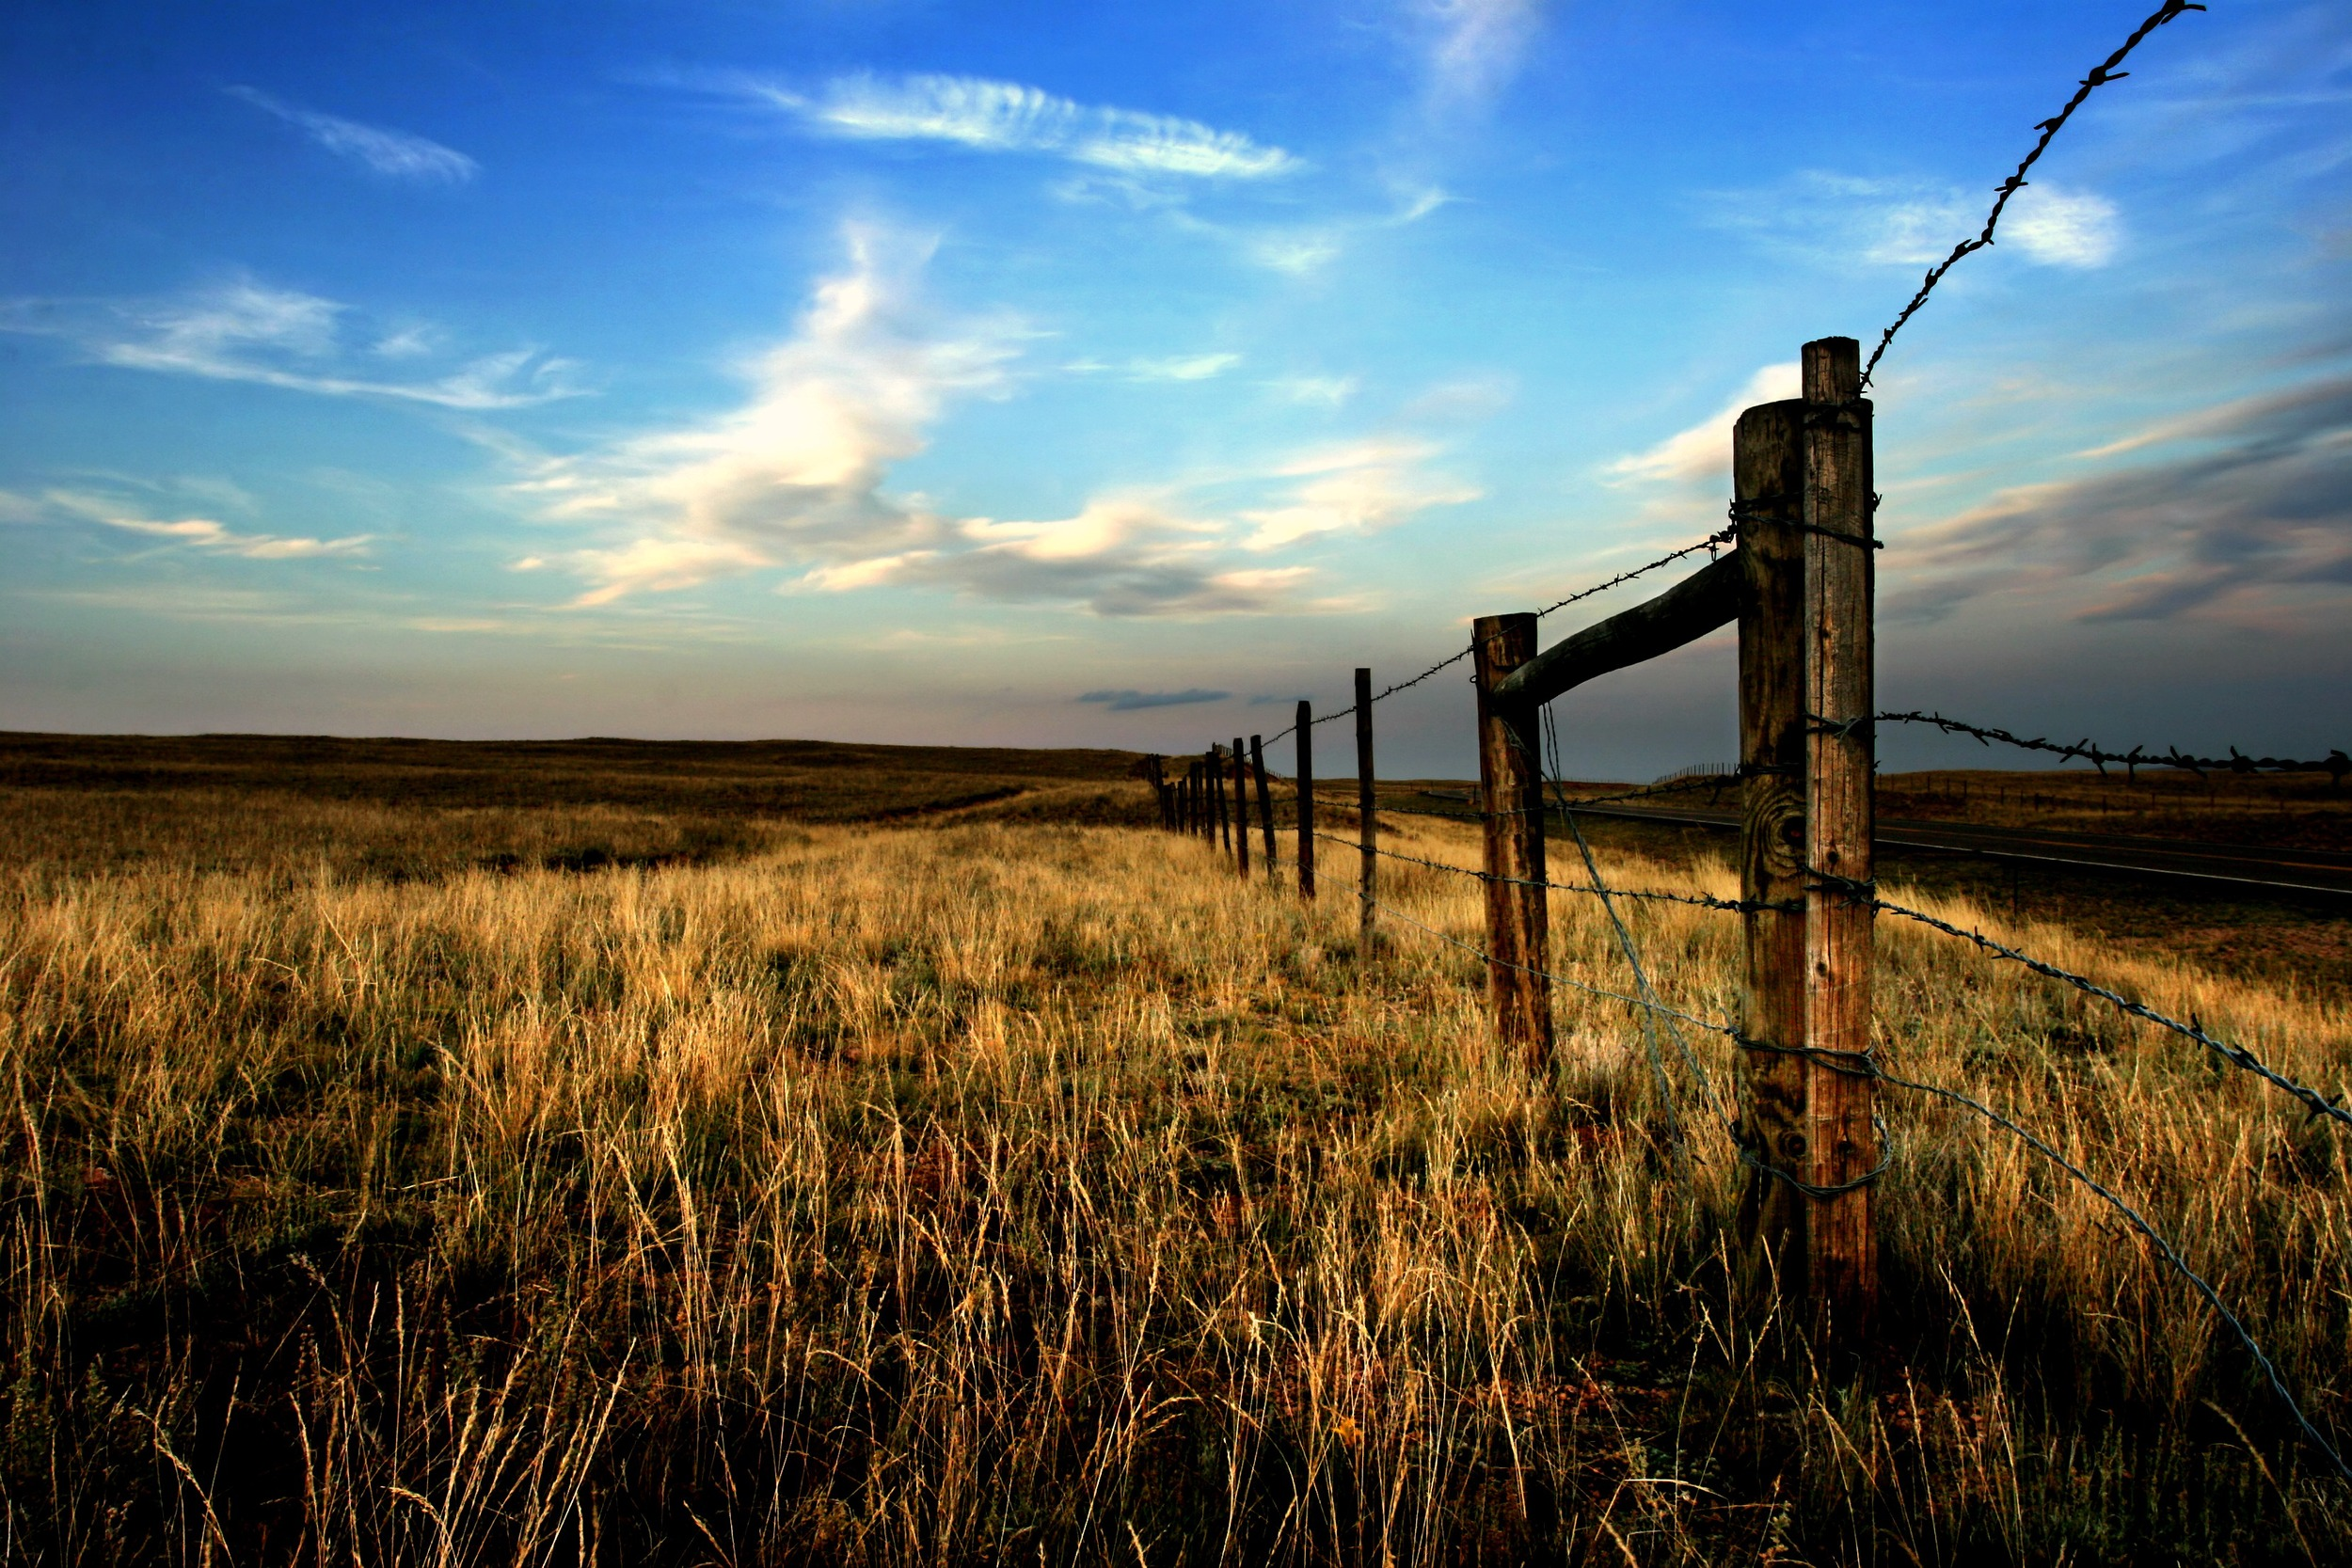 The view riding fence